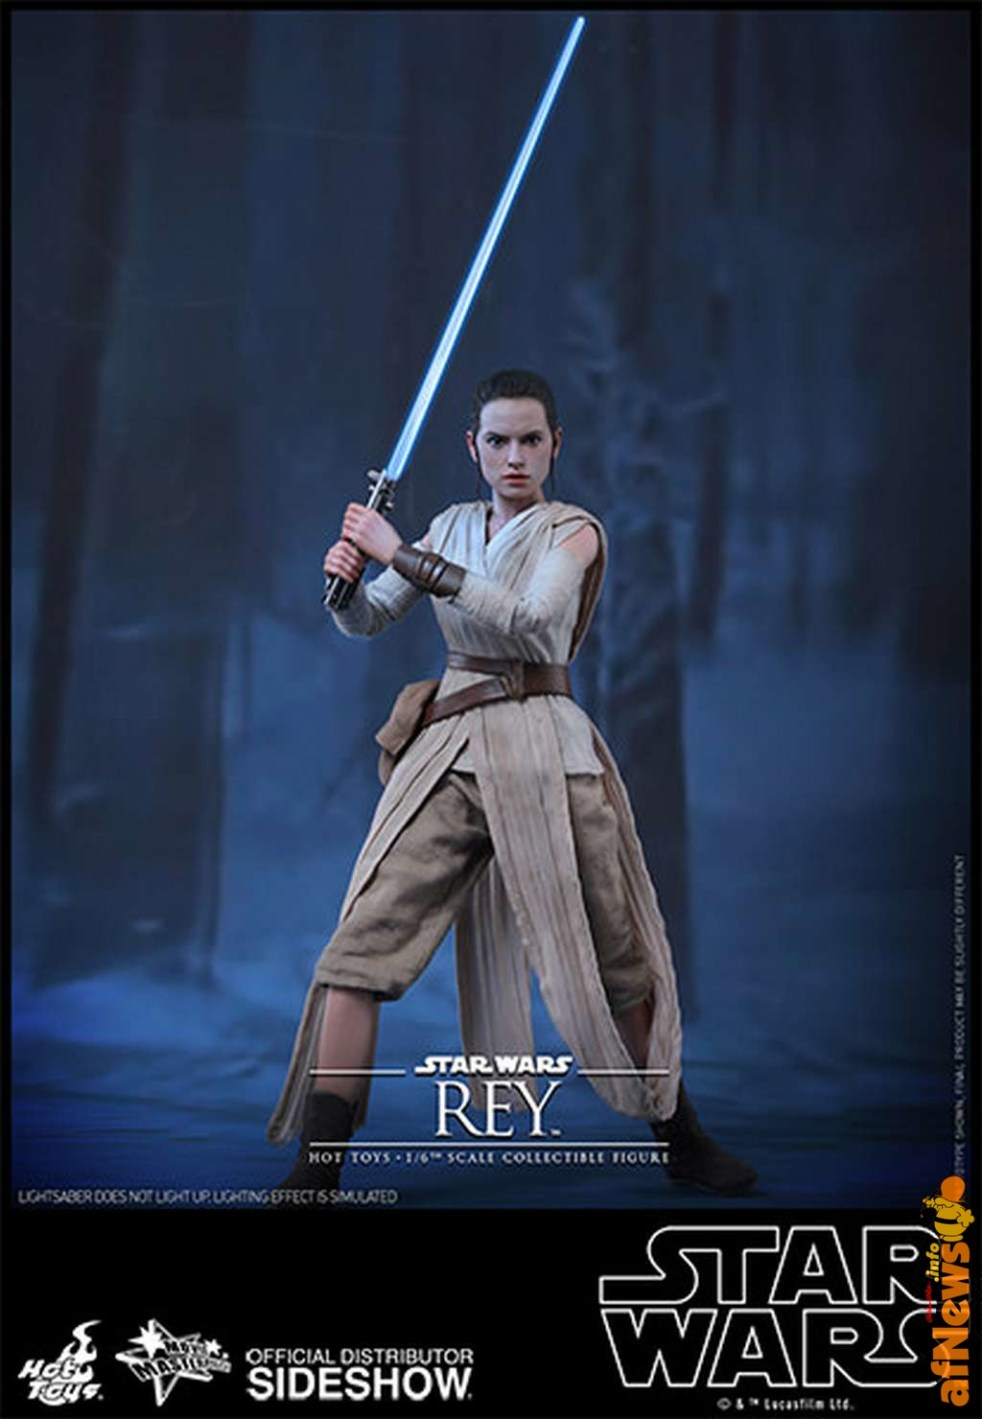 star-wars-rey-bb-8-sixth-scale-set-hot-toys-902612-20-afnews